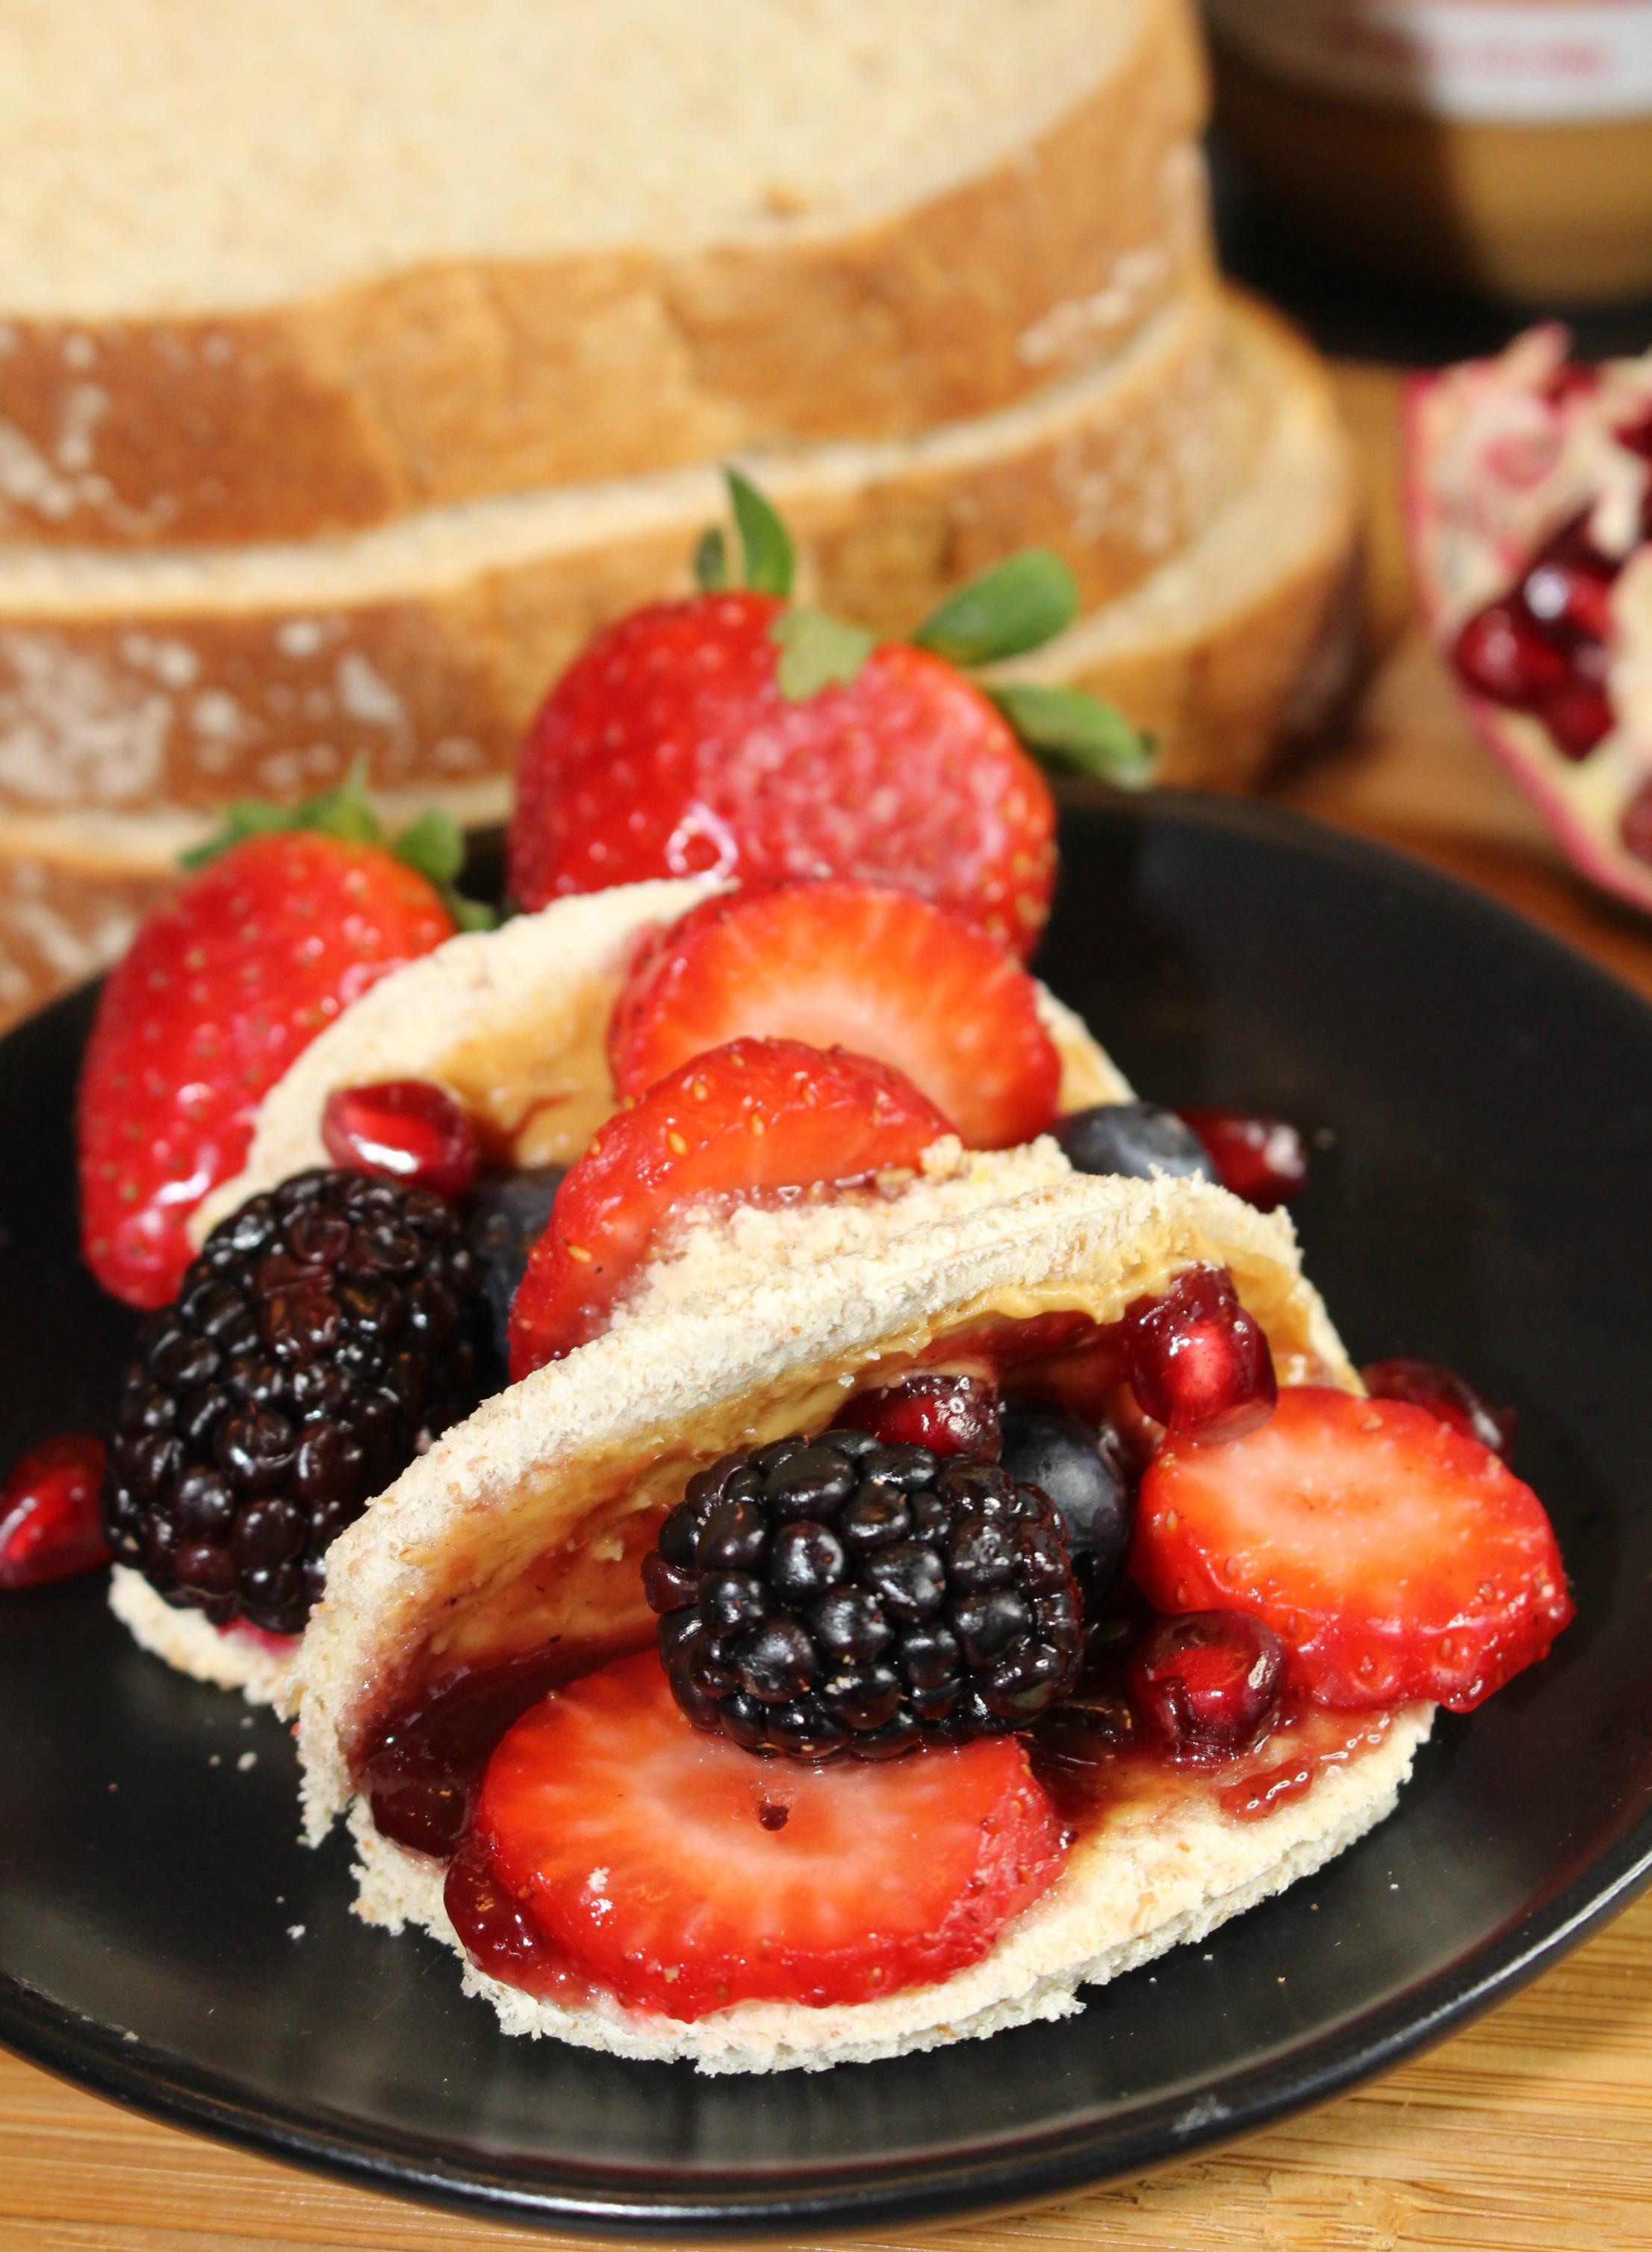 Peanut Butter and Jelly Taco Sandwiches